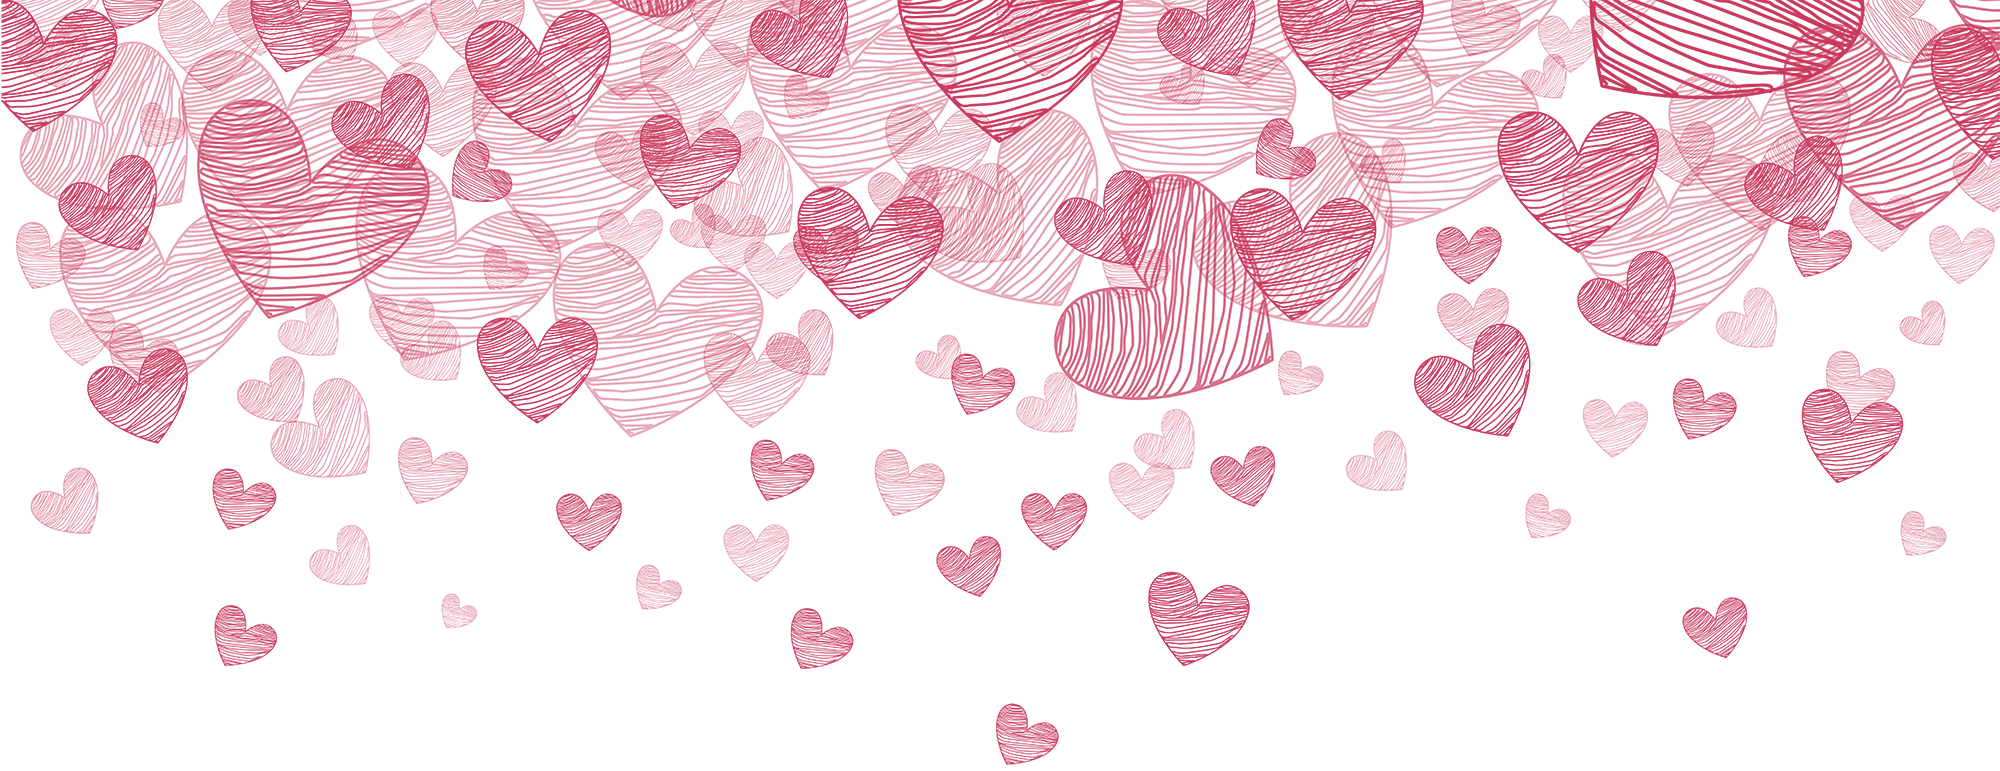 Hearts background png. Download free valentine quality